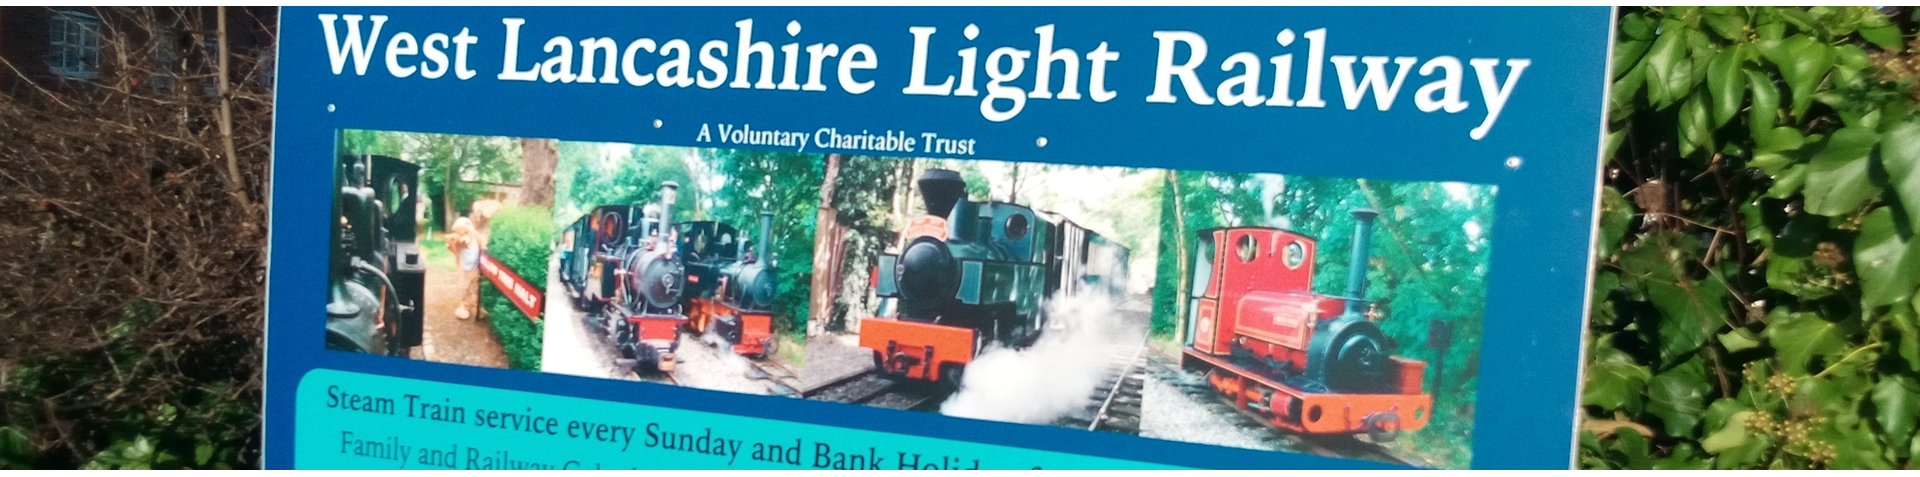 West Lancs Light Railway